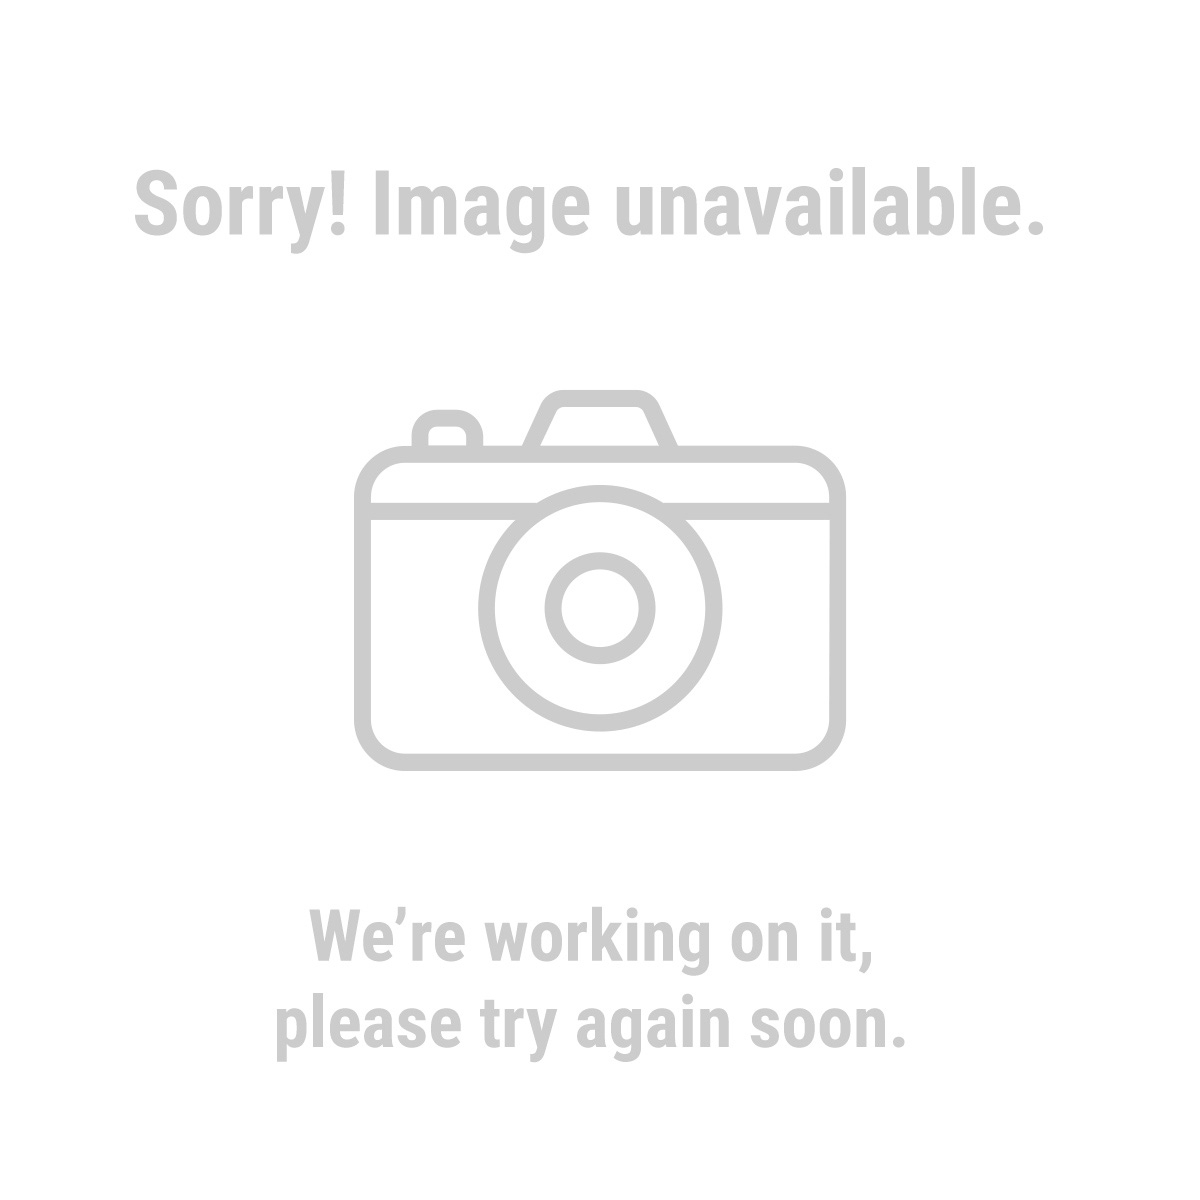 Pittsburgh® 9498 3 Piece Slip Joint Pliers Set